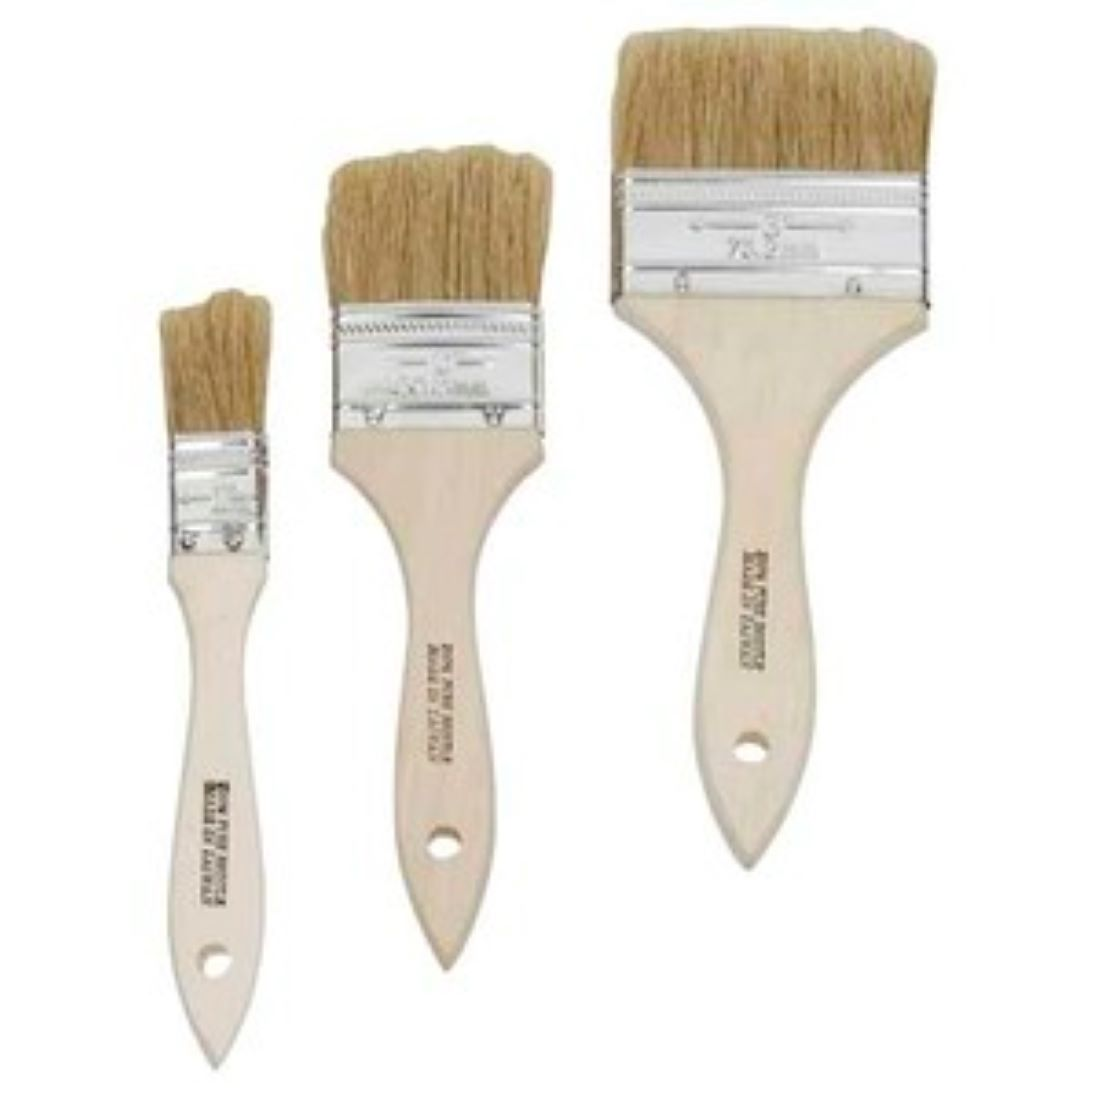 Value Disposable Chip Paint Brush 3 Pack